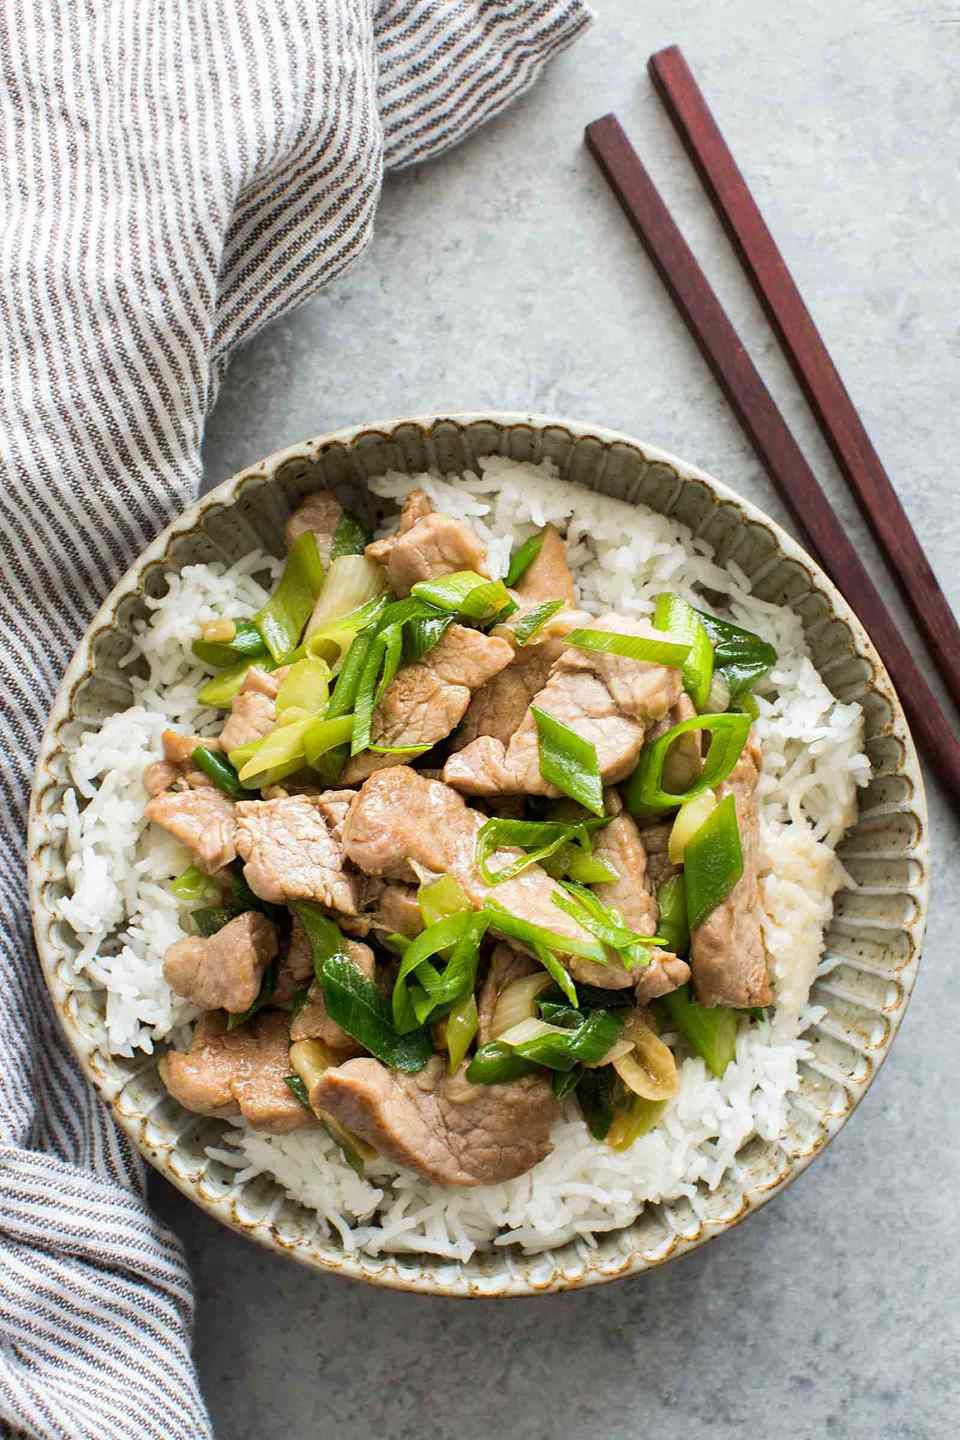 Pork Stir Fry with Green Onion in a bowl with chopsticks beside